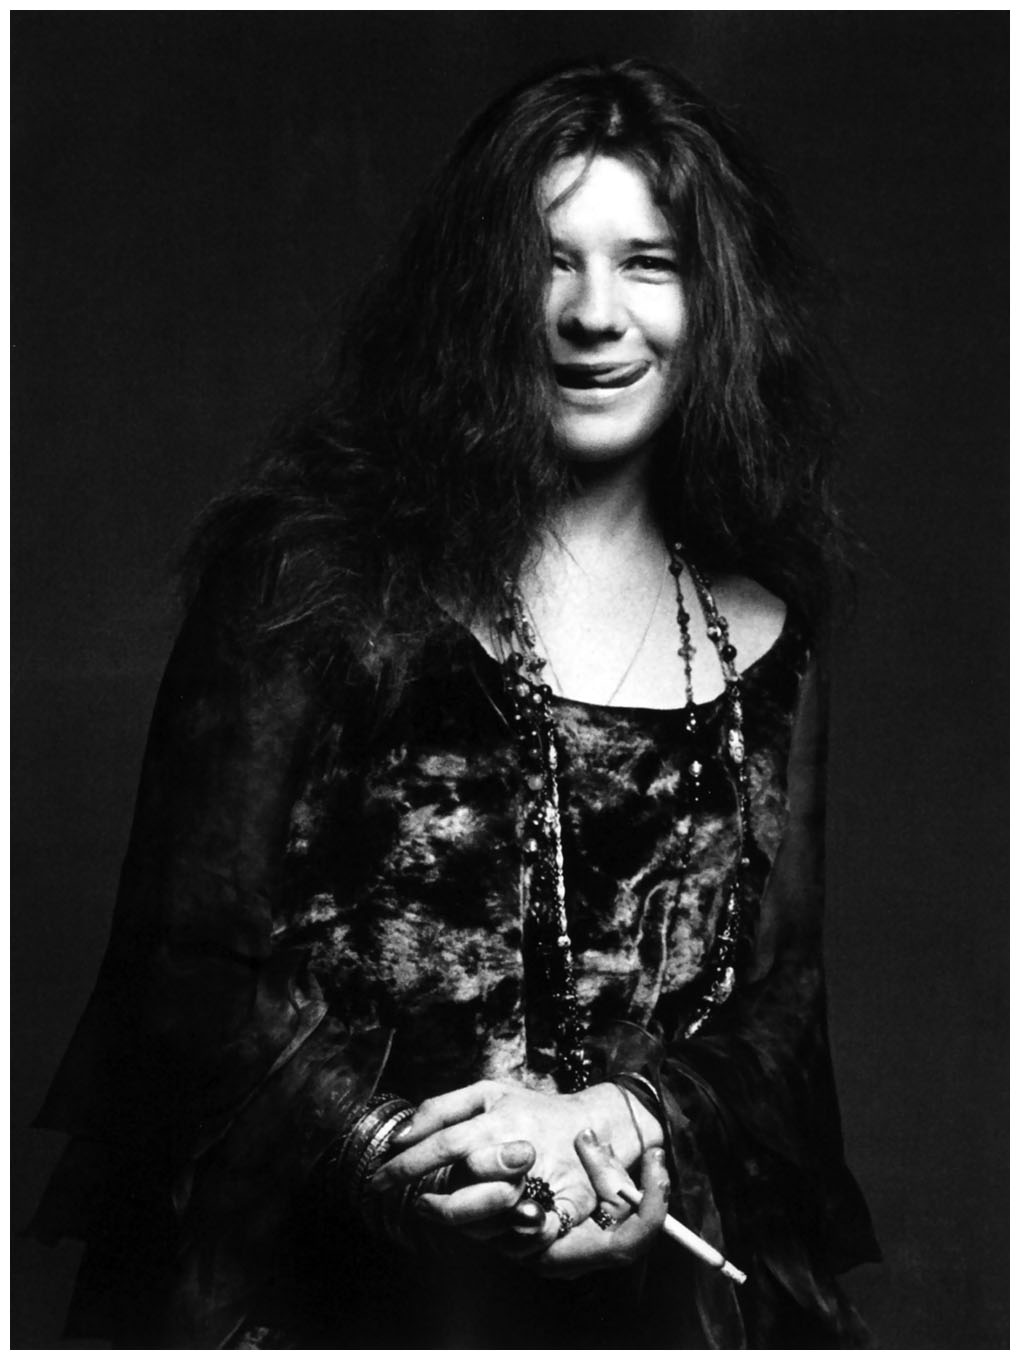 francesco-scavullo-janis-joplin-usa-1969